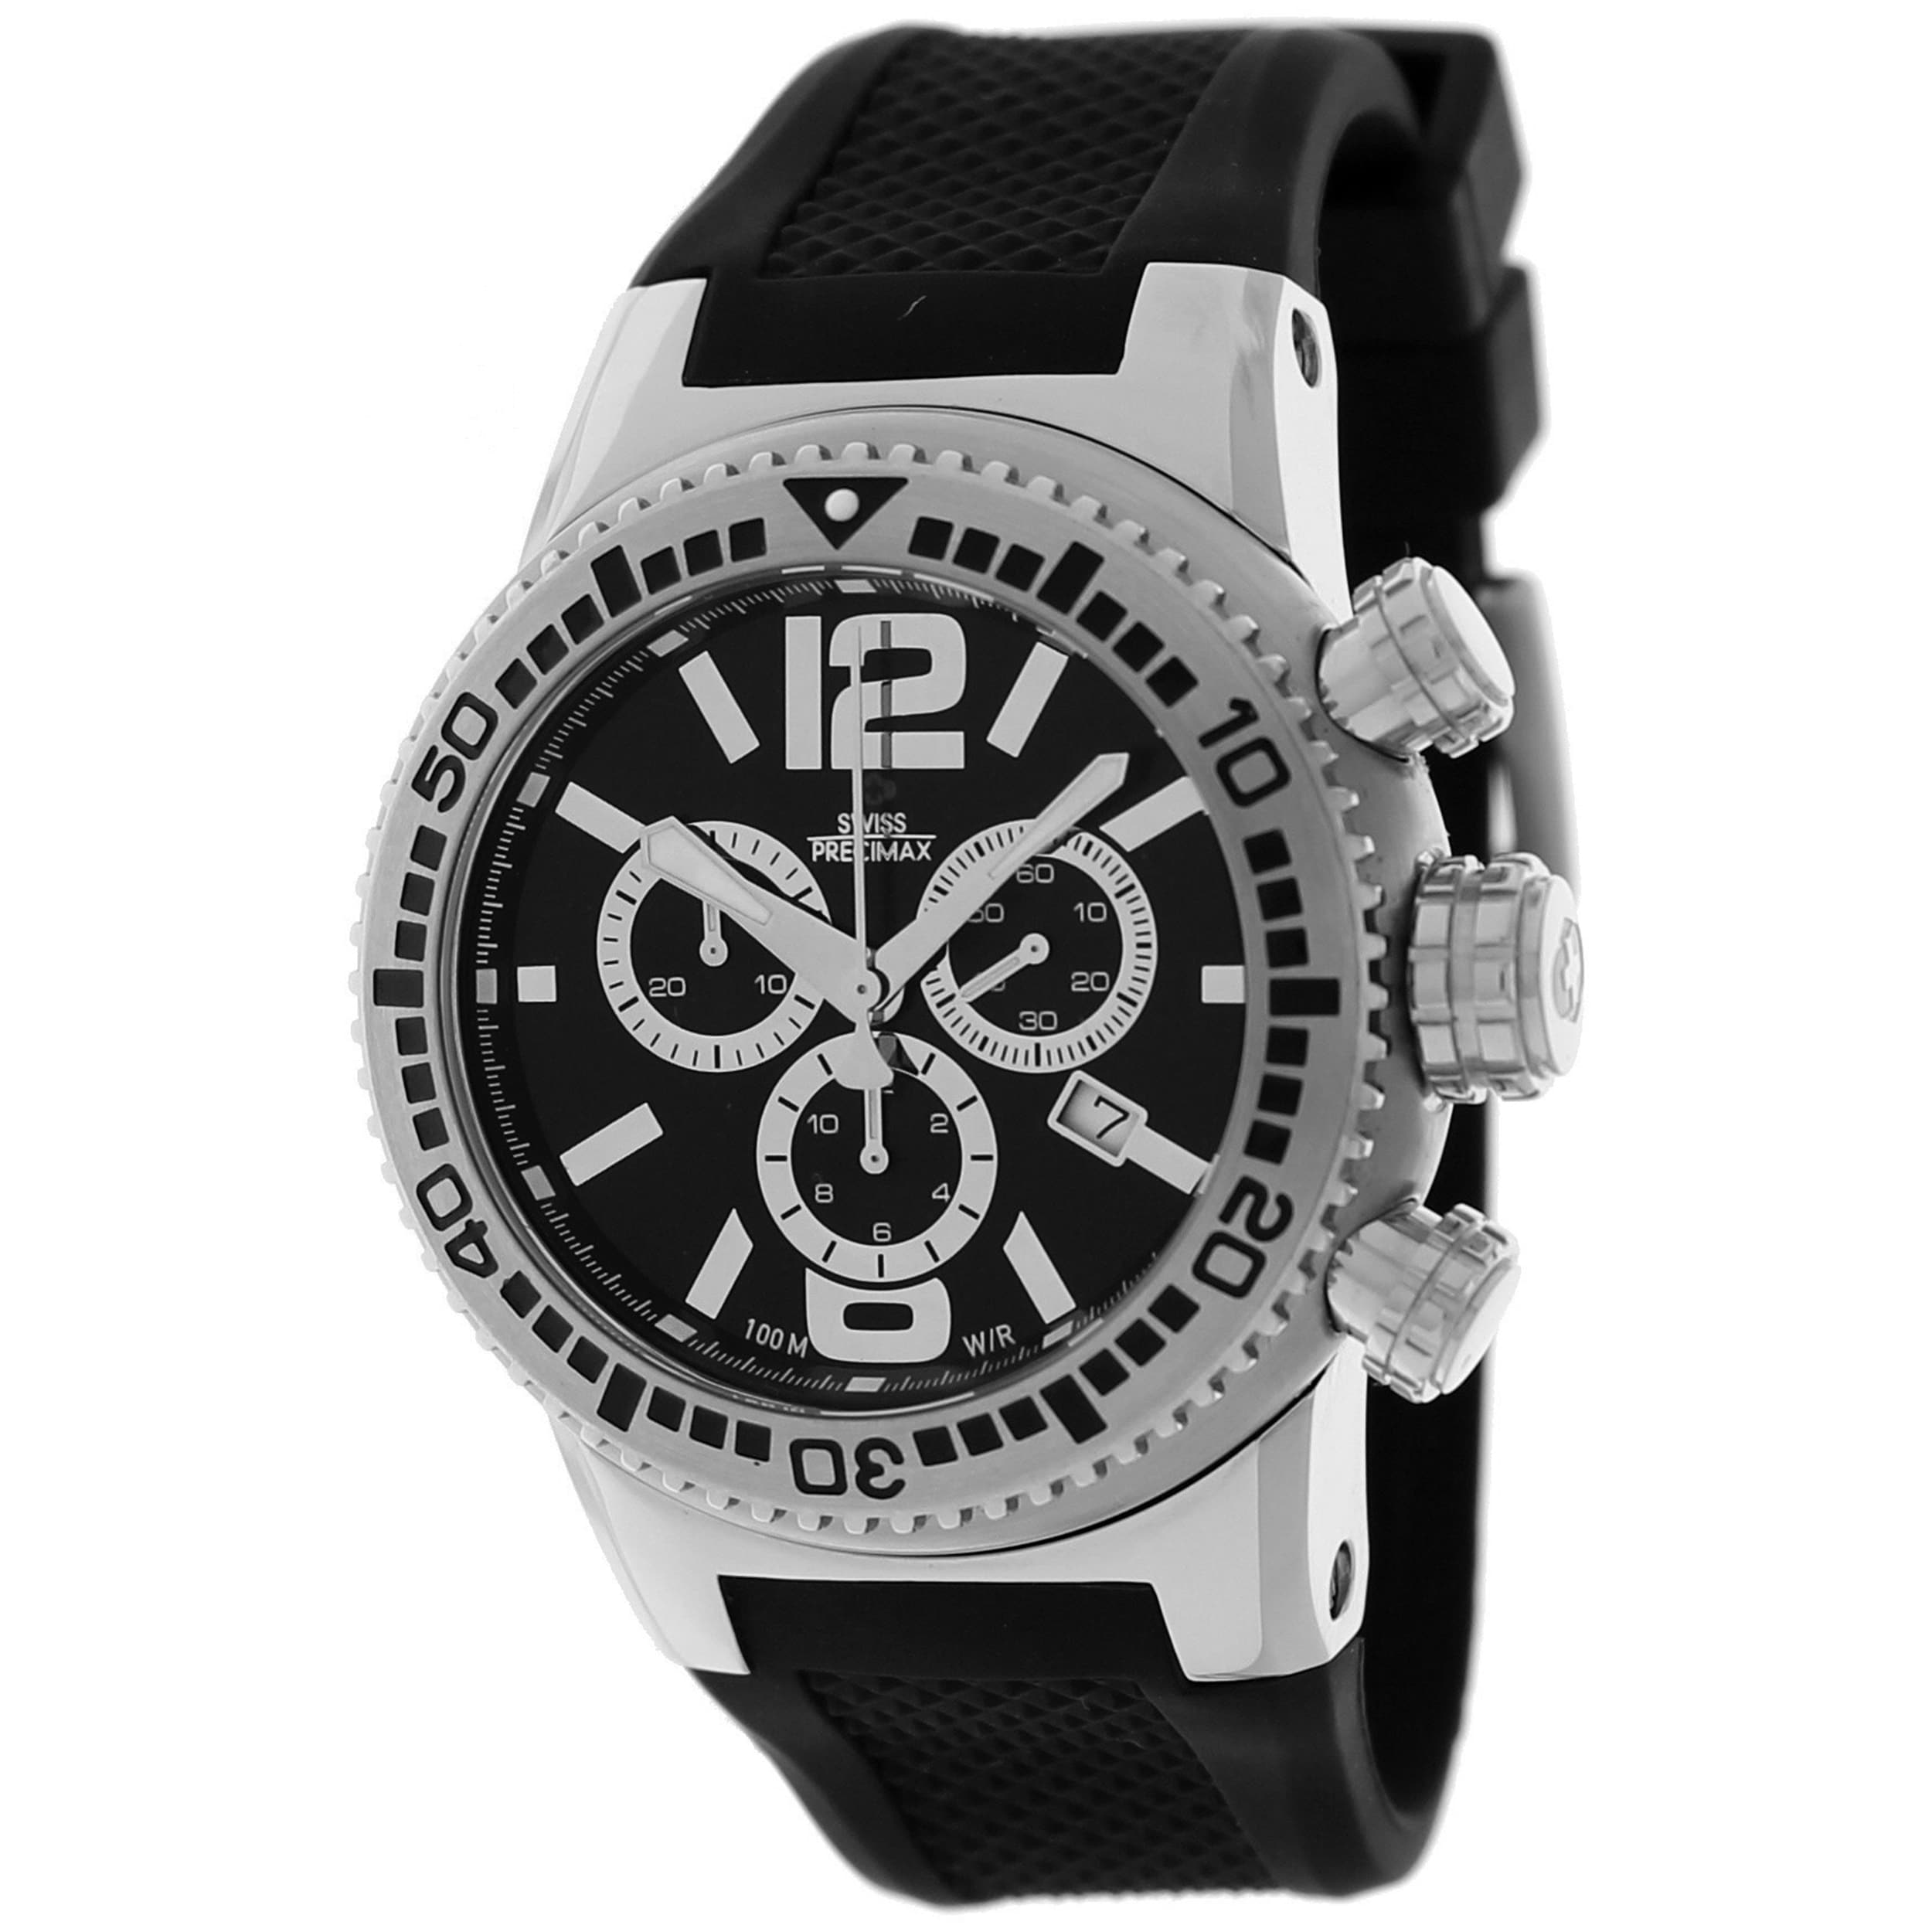 Swiss Precimax Men's Titan Elite Black-Dial Silicone Watch